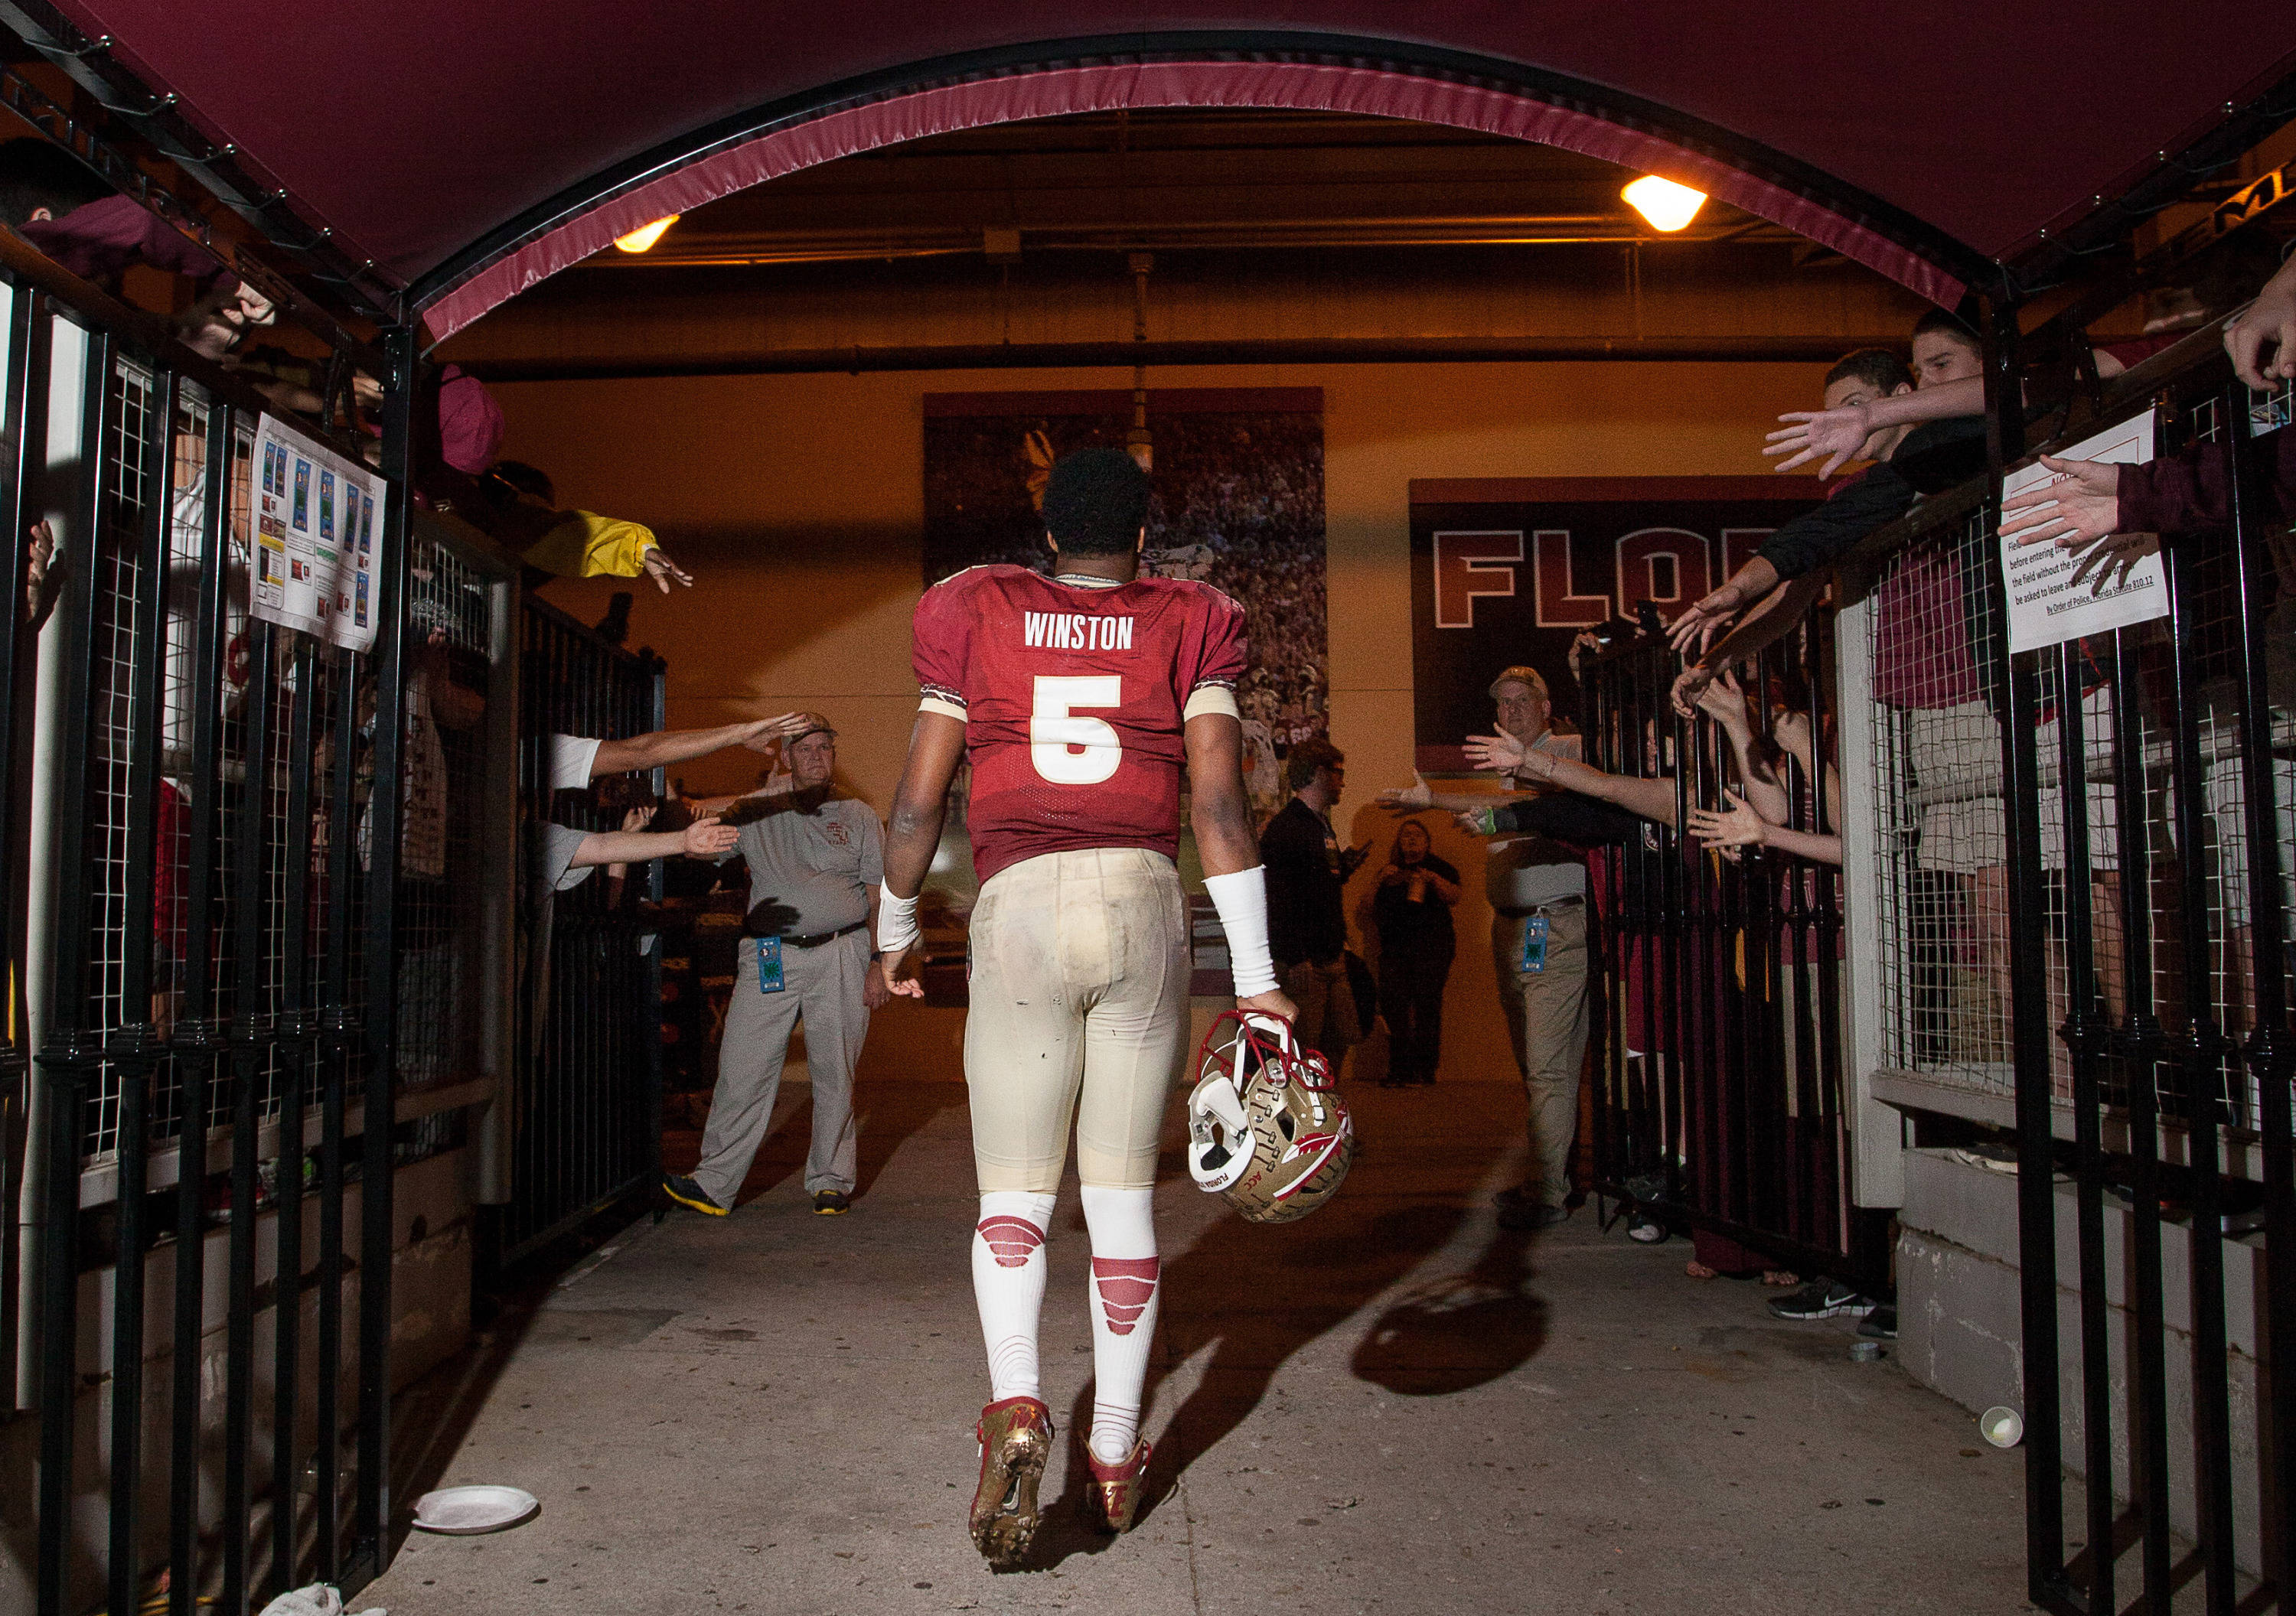 Jameis Winston (5) walks through the tunnel after FSU Football's 80-14 victory over Idaho in Tallahassee, Fla on Saturday, November 23, 2013. Photos by Mike Schwarz.